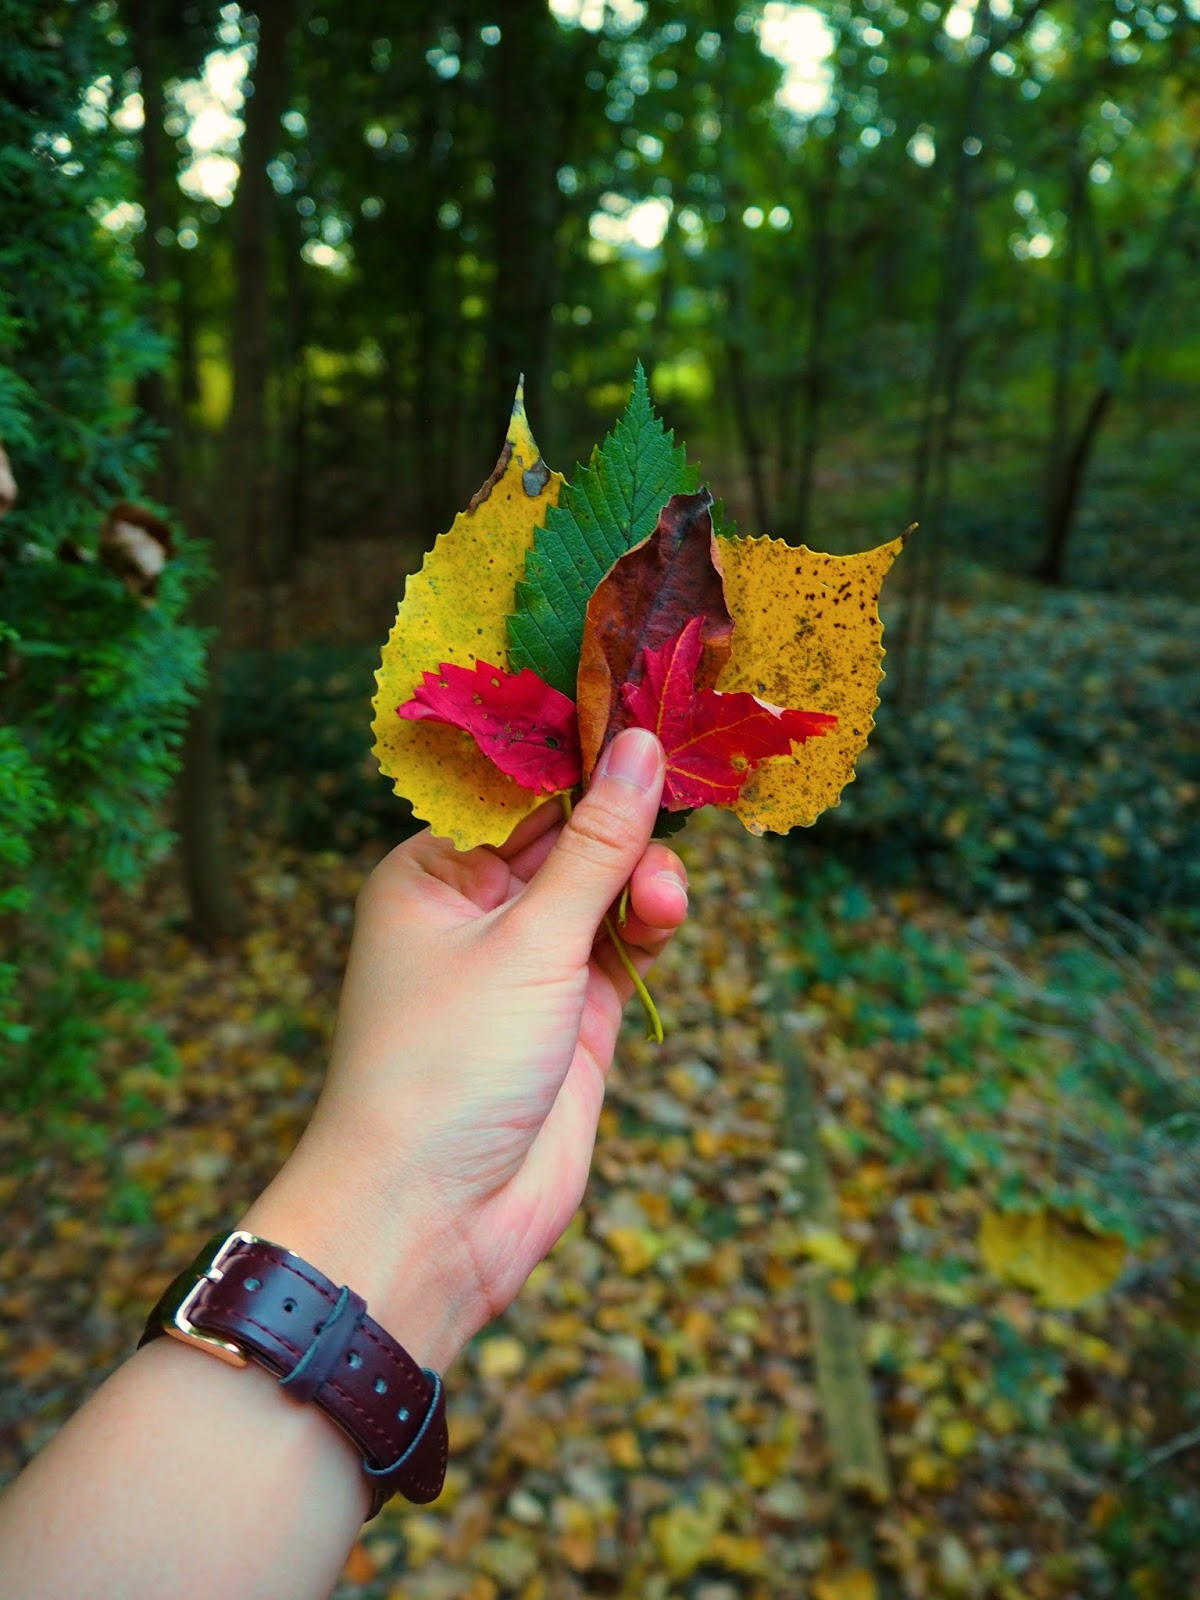 colorful leaves in the autumn or fall time